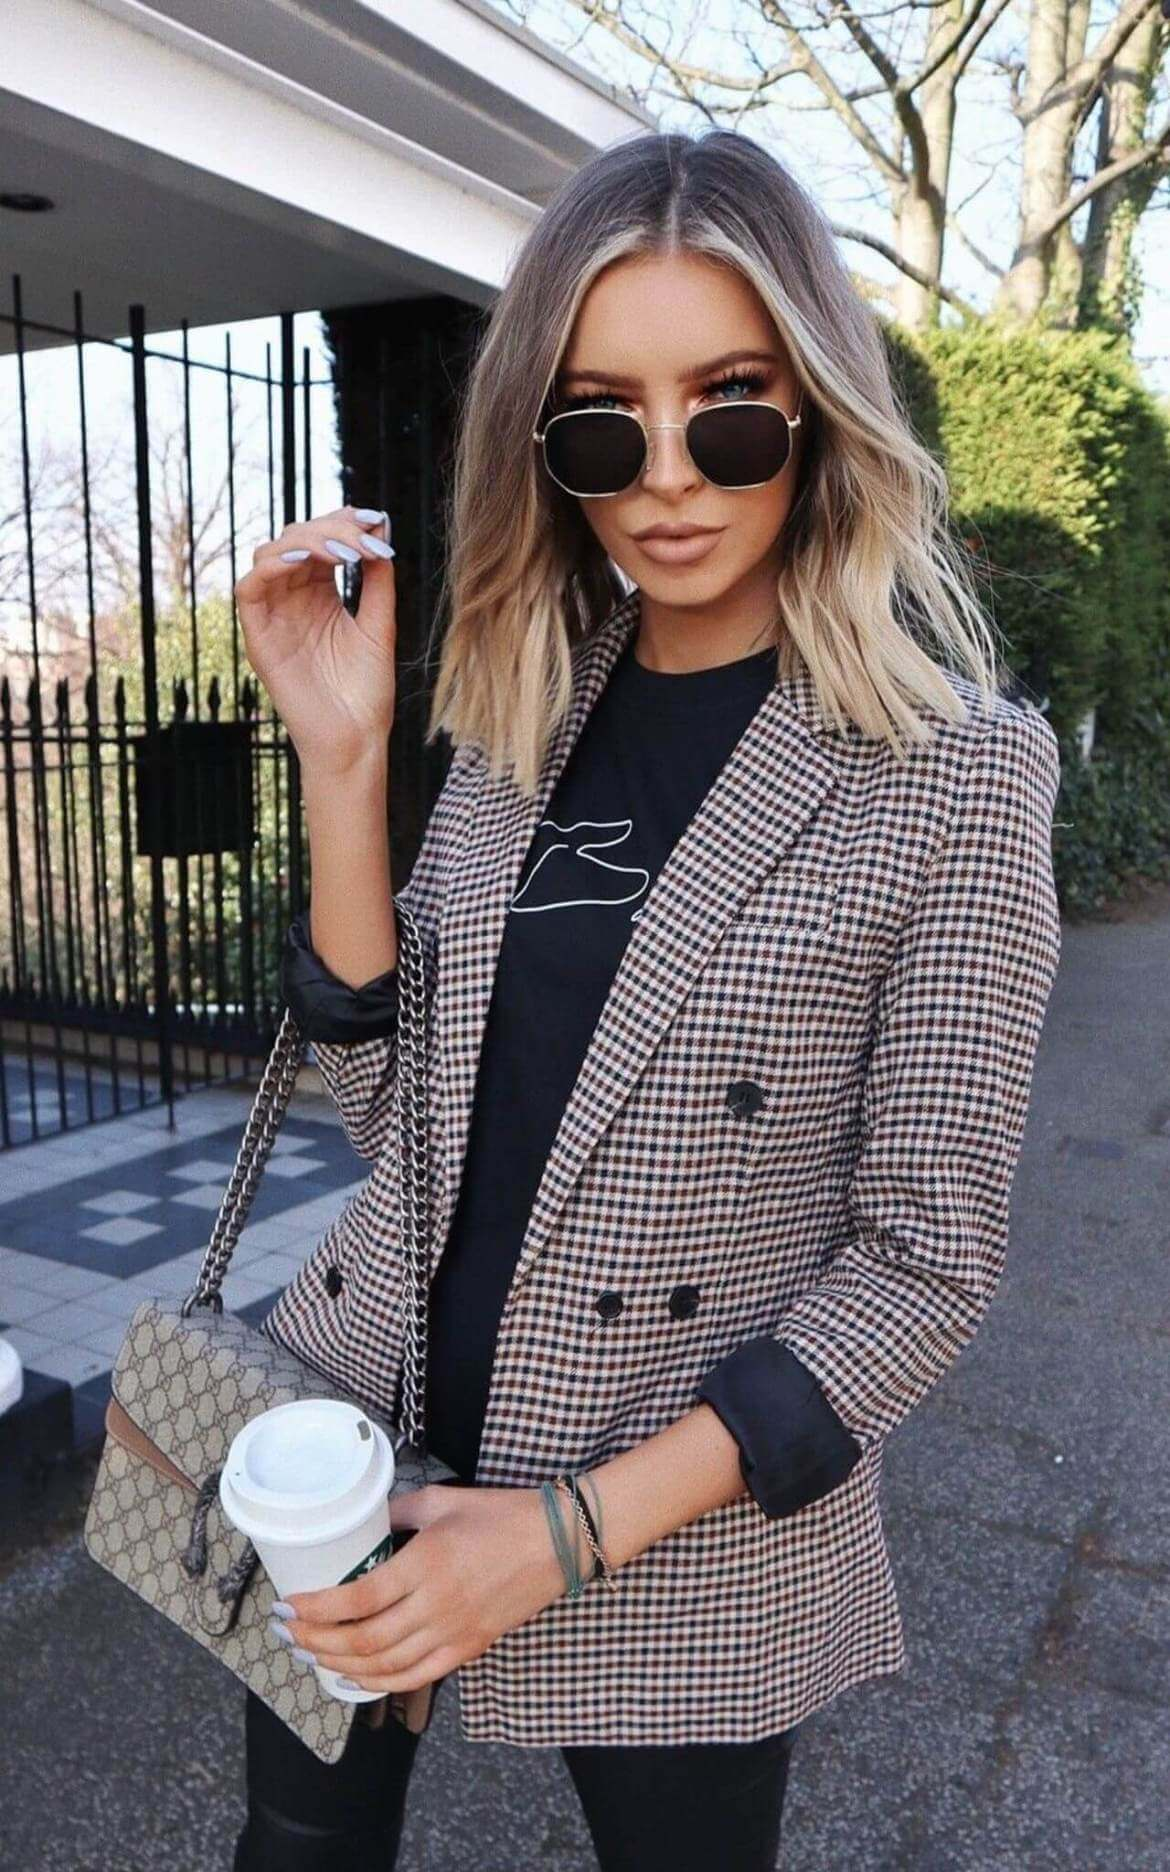 model wears check blazer and black t-shirt holding a coffee cup